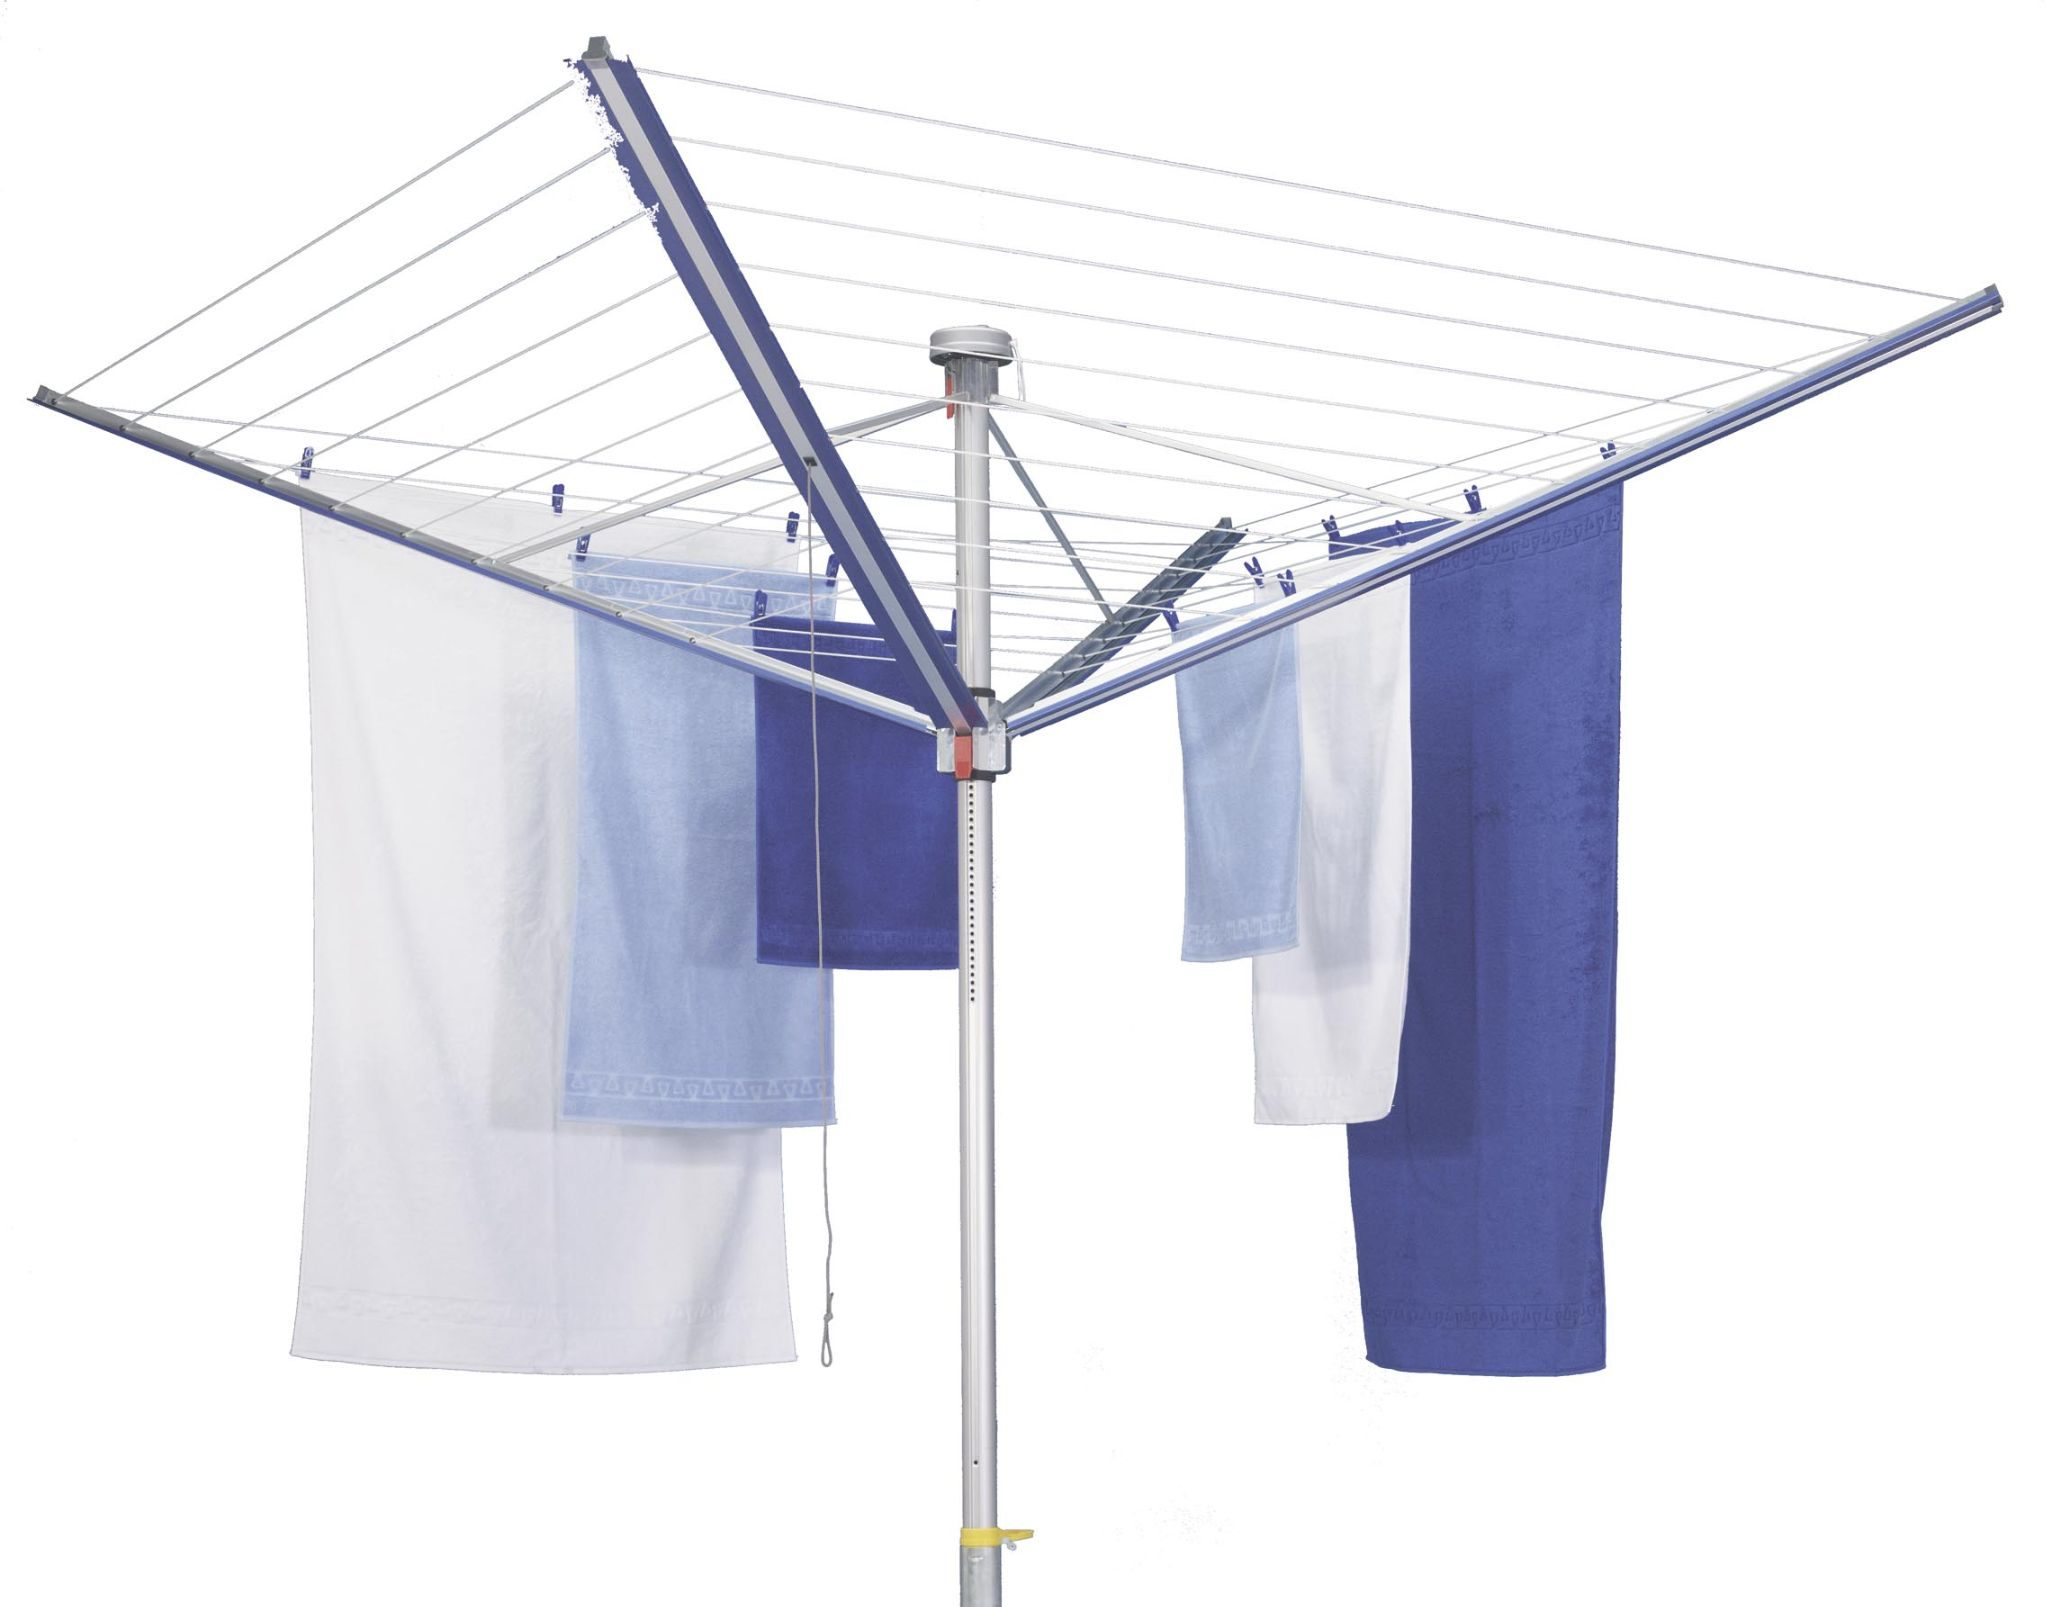 First Lady Rotary Outdoor Umbrella Clothesline